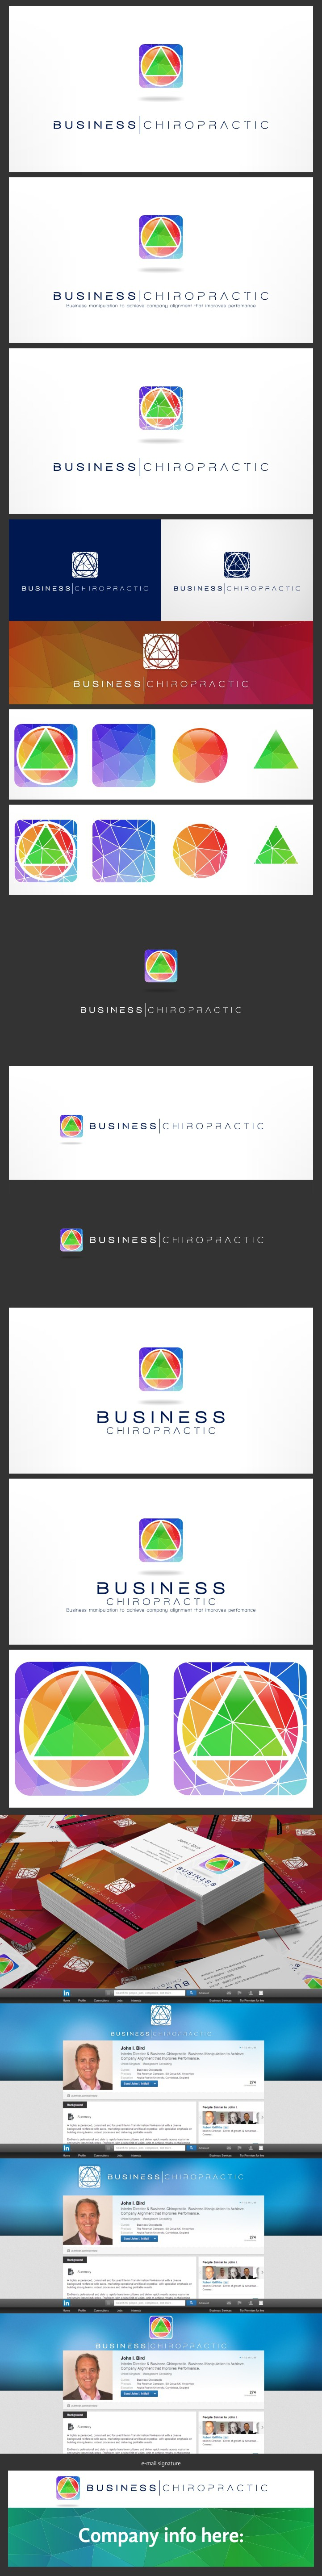 Create a full brand imagery for Business Chiropractic. Business skills delivered differently!